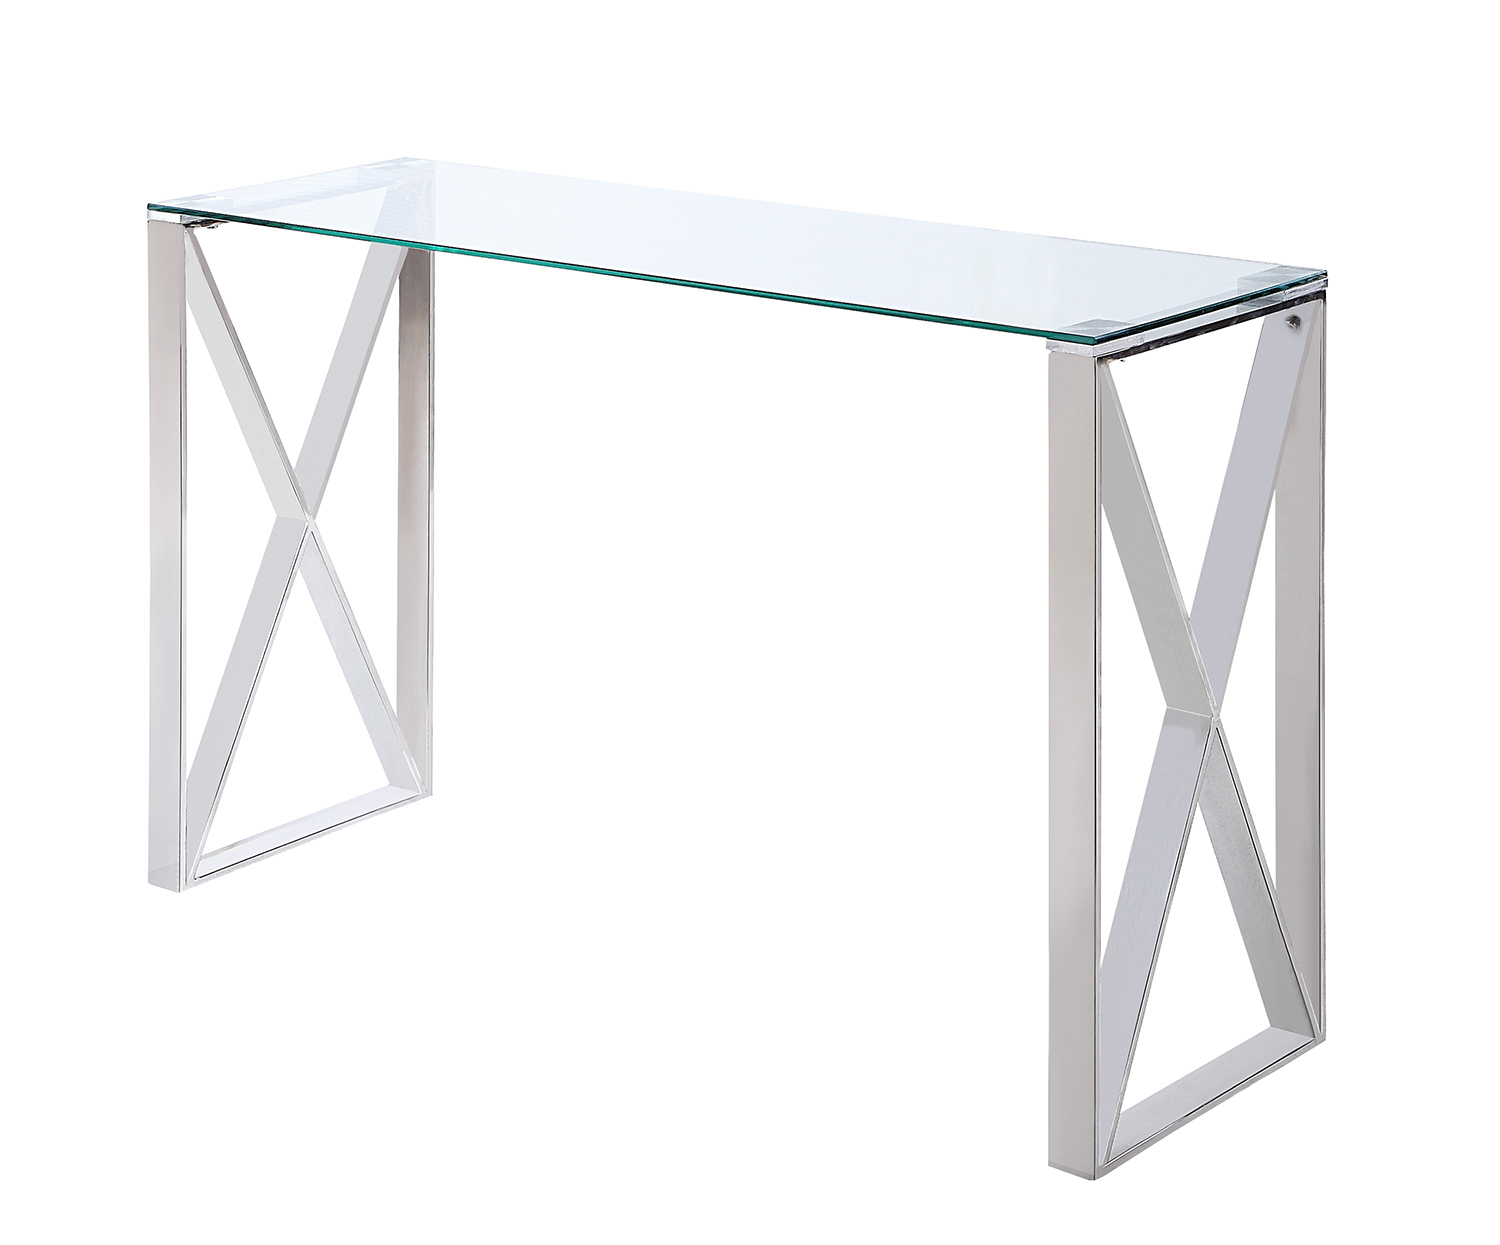 Homelegance Rush Sofa Table with Glass Top - Polished Chrome